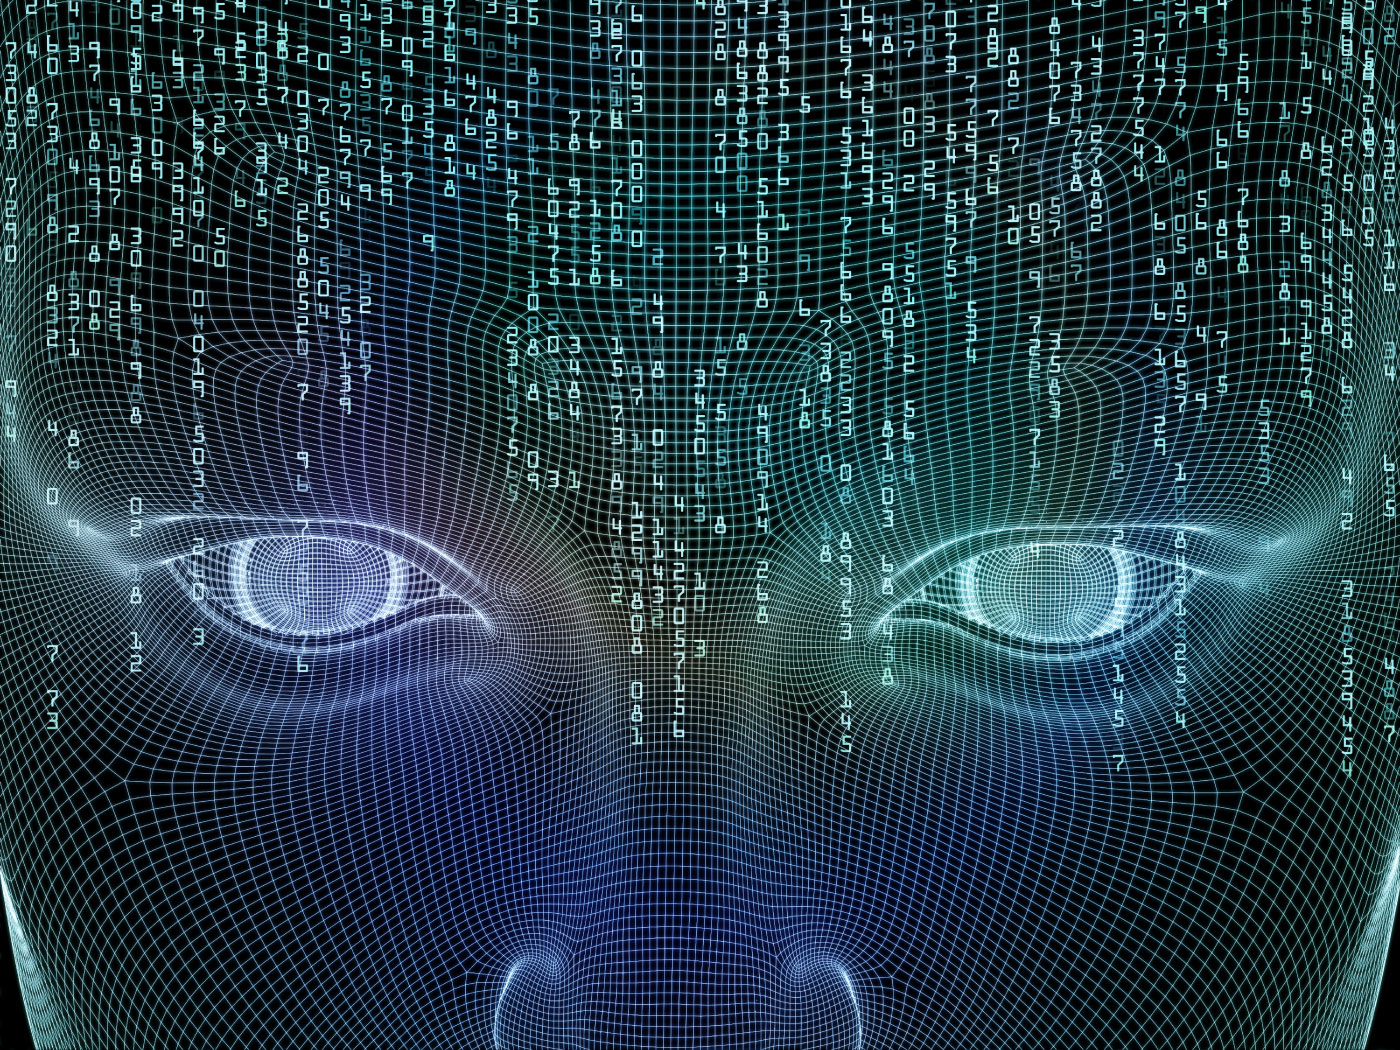 Economic and Social Impact of AI Takes Center Stage